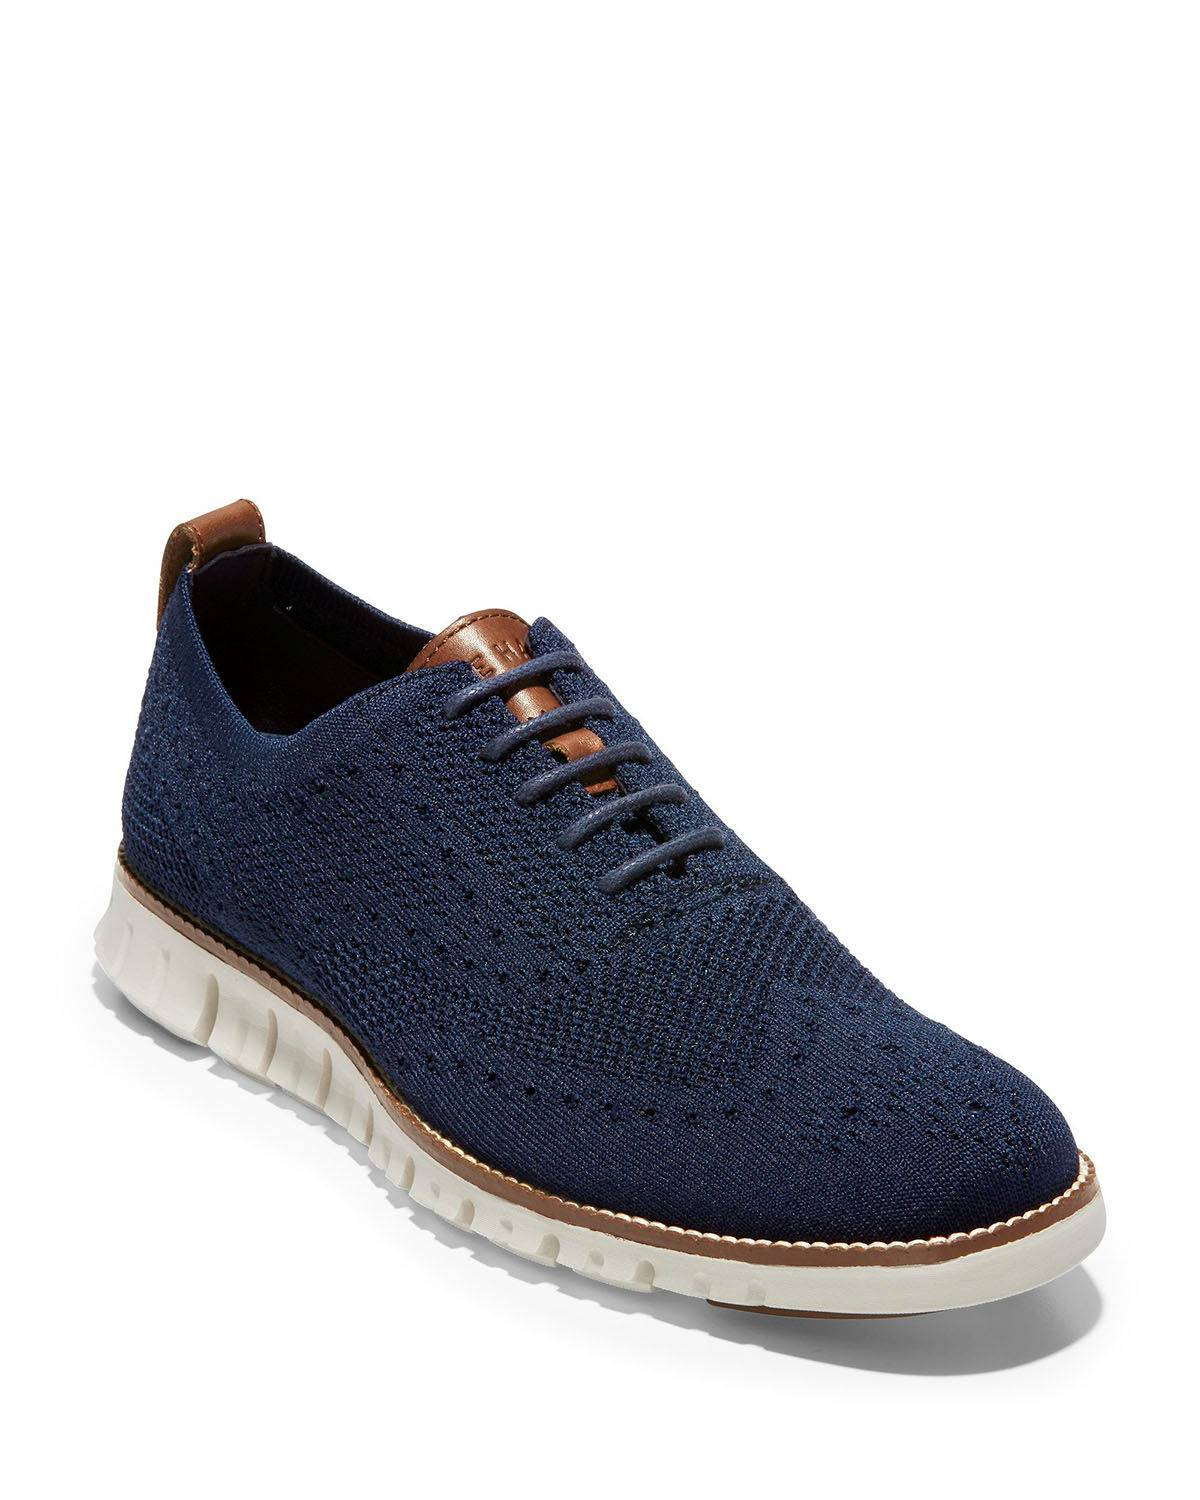 Cole Haan Men's ZeroGrand Knit Wing-Tip Oxfords - Size: 10.5D